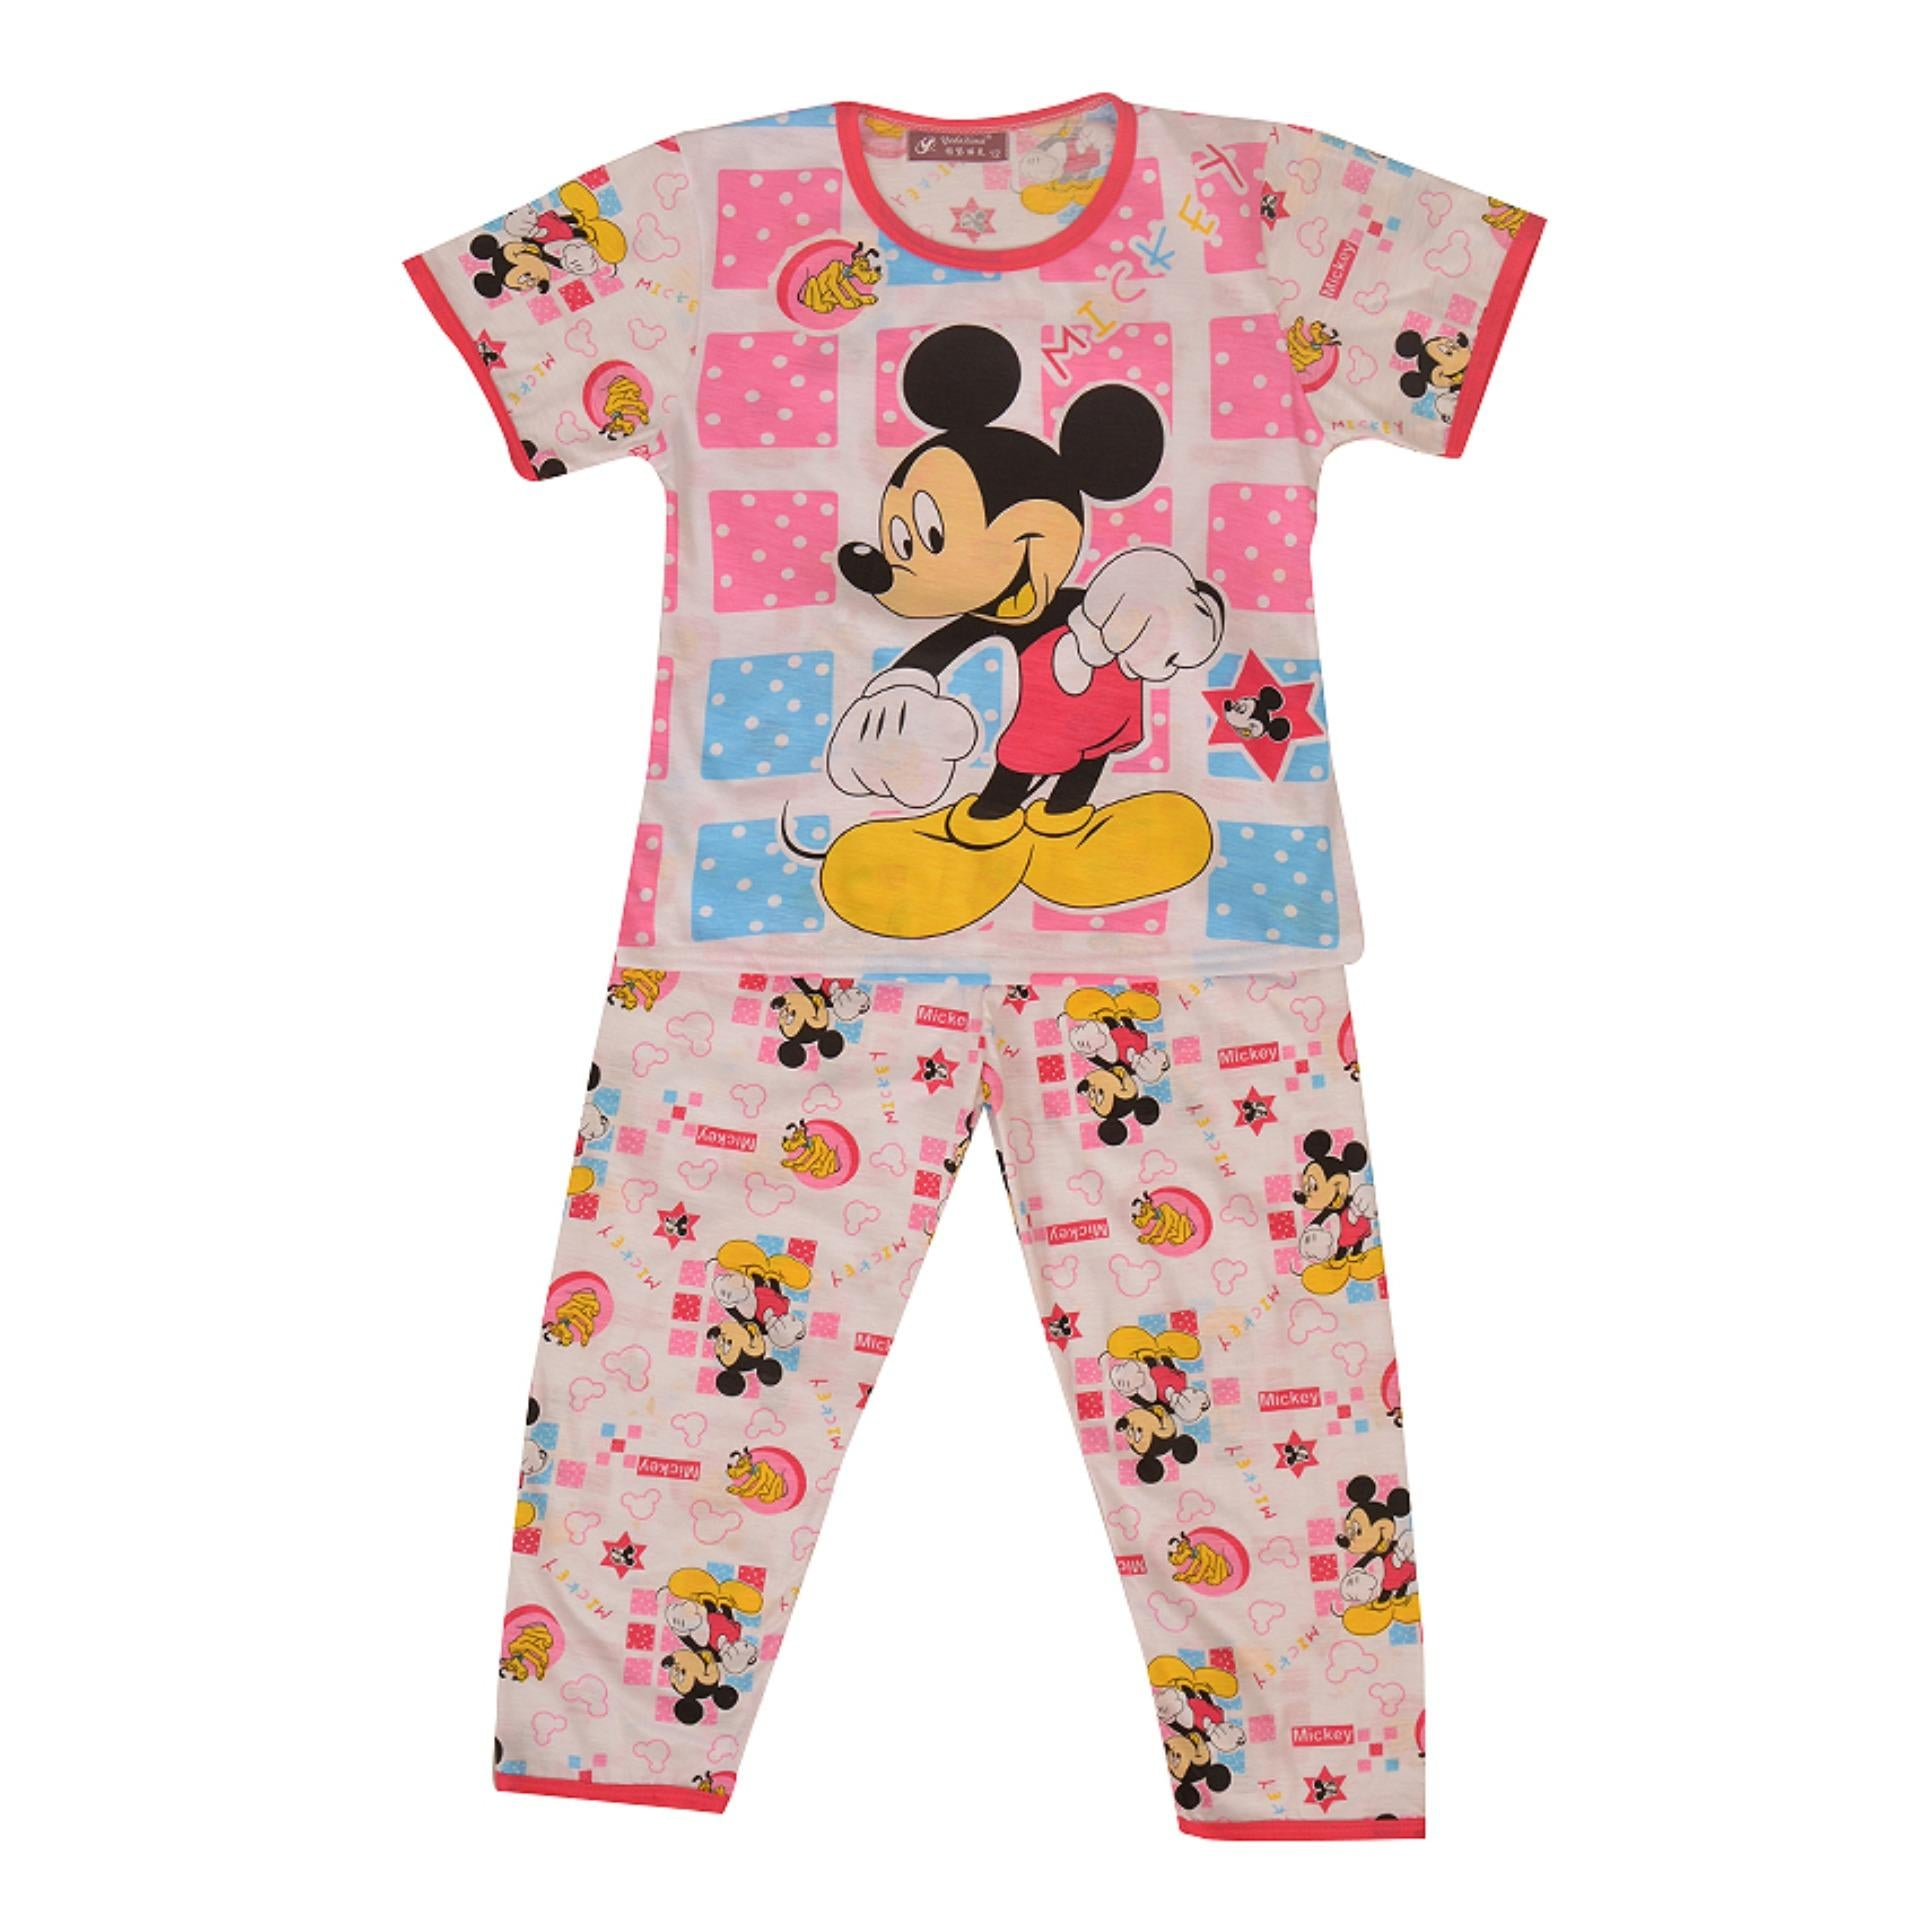 Pack of 2 Pure Cotton Night Suit (Pajama + Tshirt) for Girls - Mickey Mouse UG-423-6